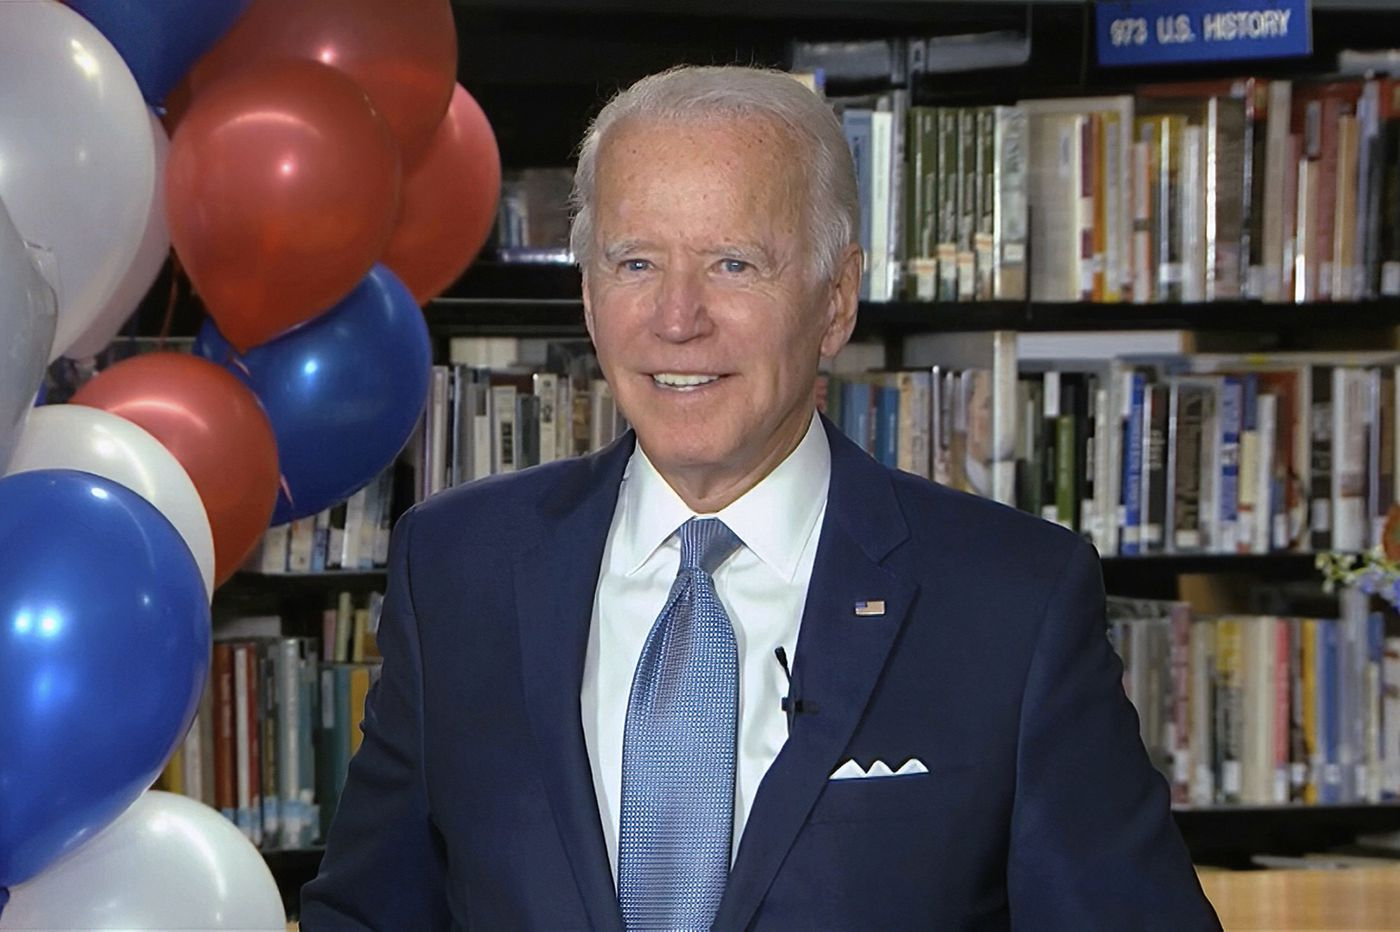 Democrats make it official, nominate Biden to take on Trump